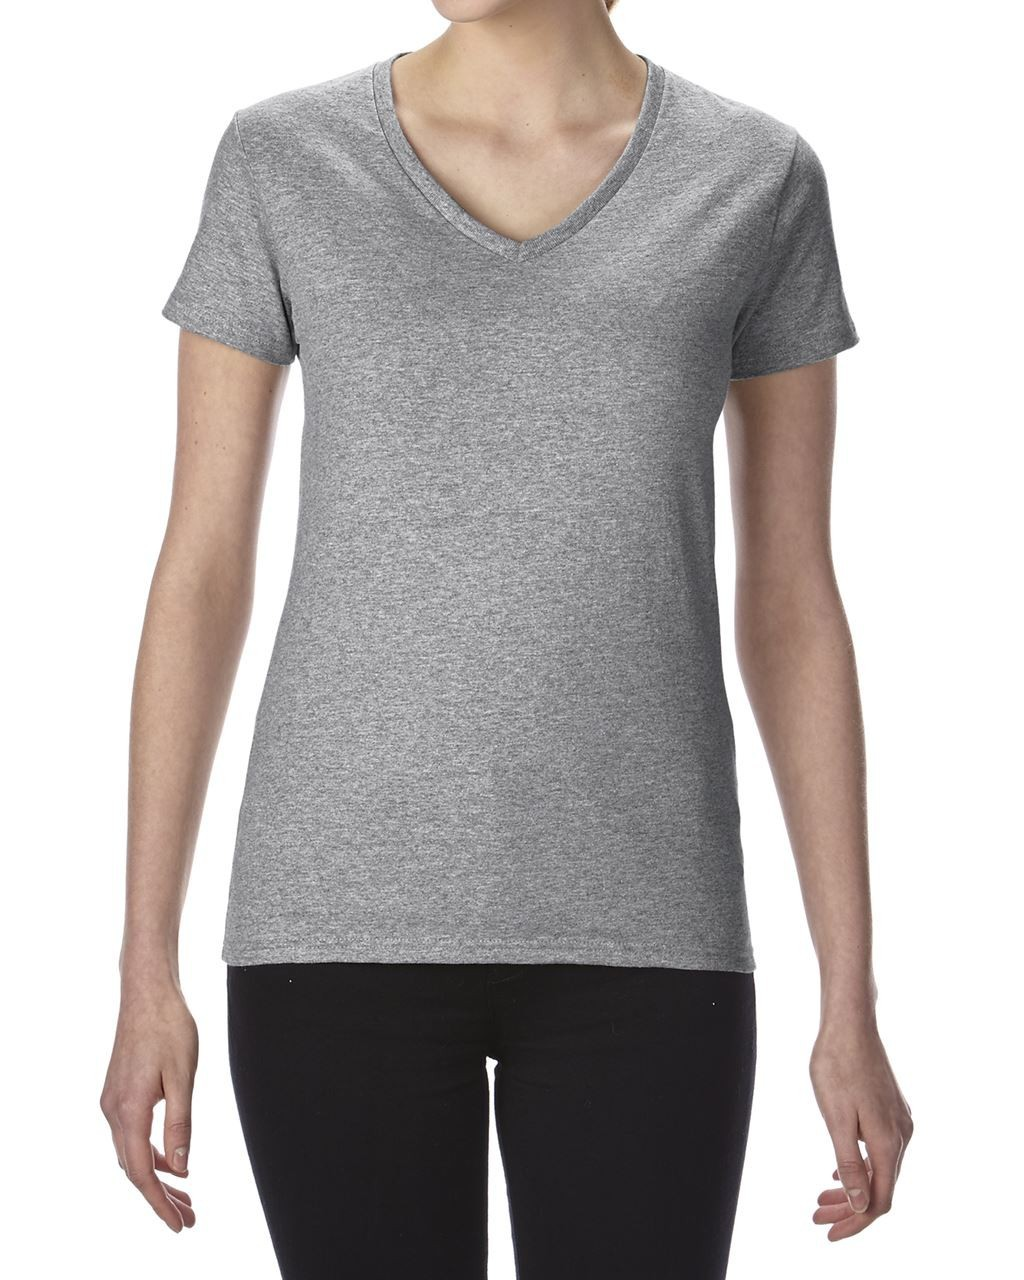 555bb3b924 Gildan Premium Cotton Ladies V-neck T-shirt, RS Sport Grey, (T-shirt ...